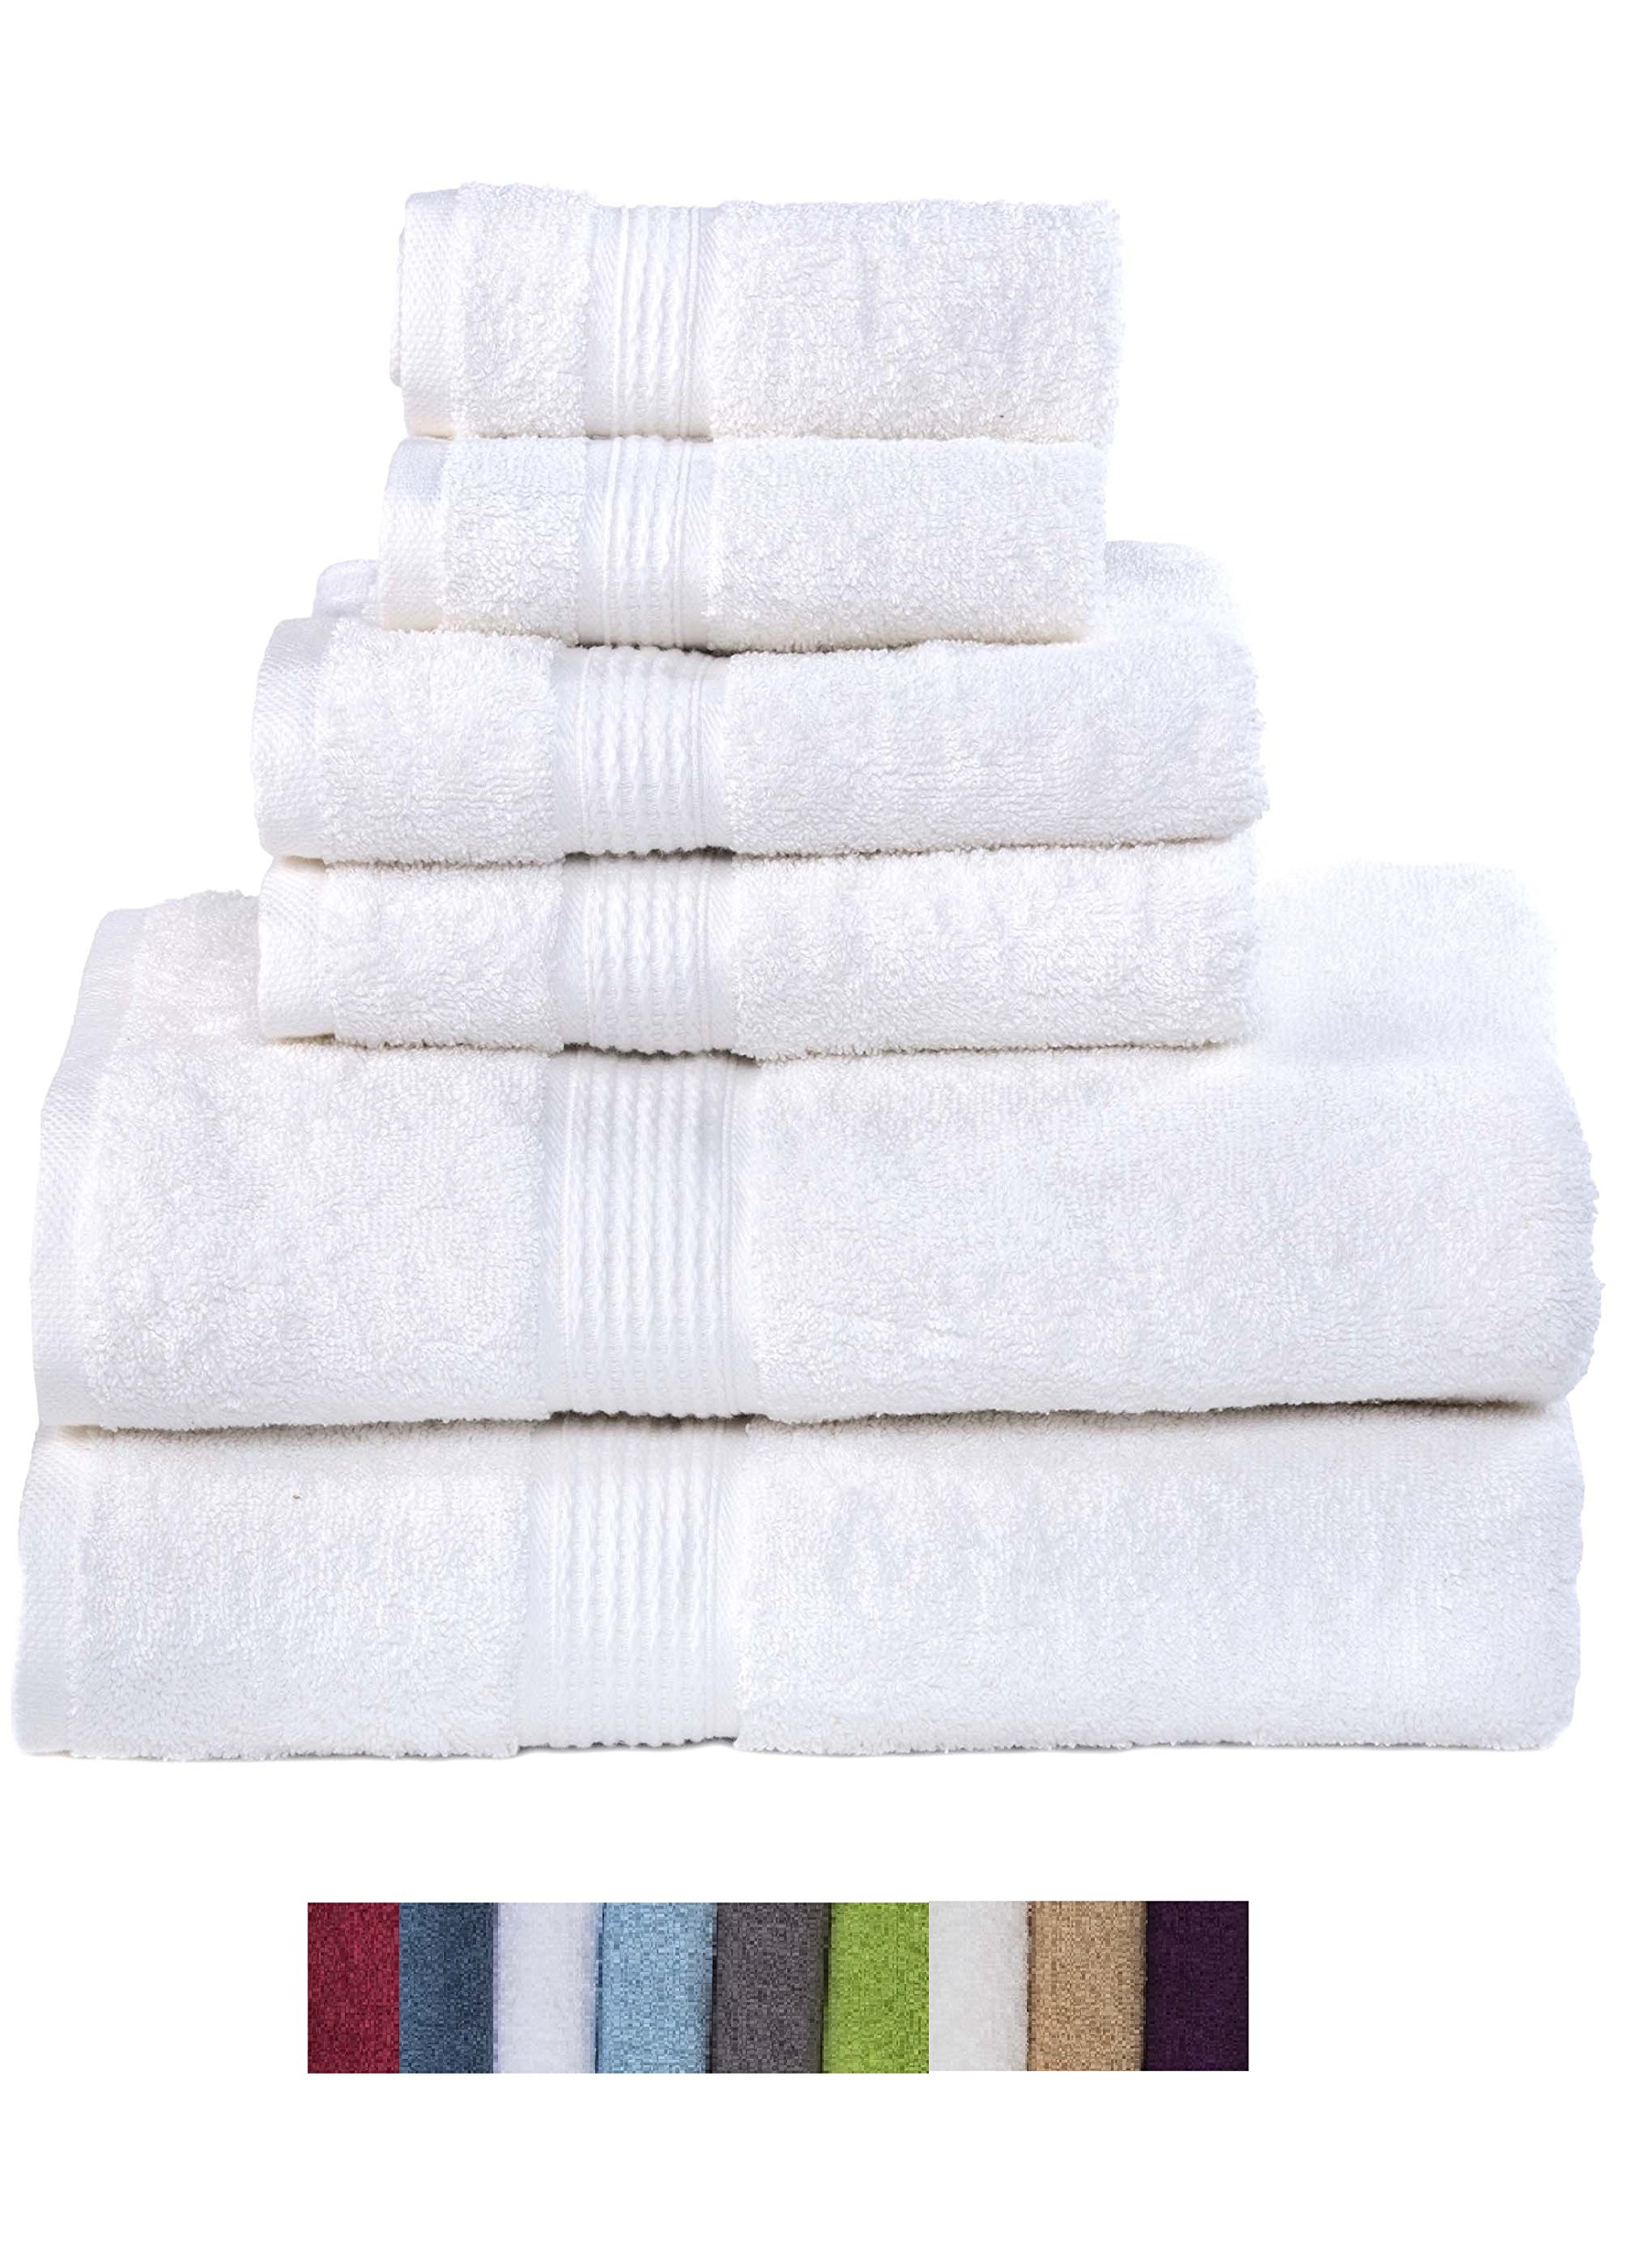 Hydro Basics Fade-Resistant 6-Piece Cotton Towel Set, 100% Cotton terry bathroom set, Soft, Absorbent, Machine Washable, Quick Dry (white) by Hydro